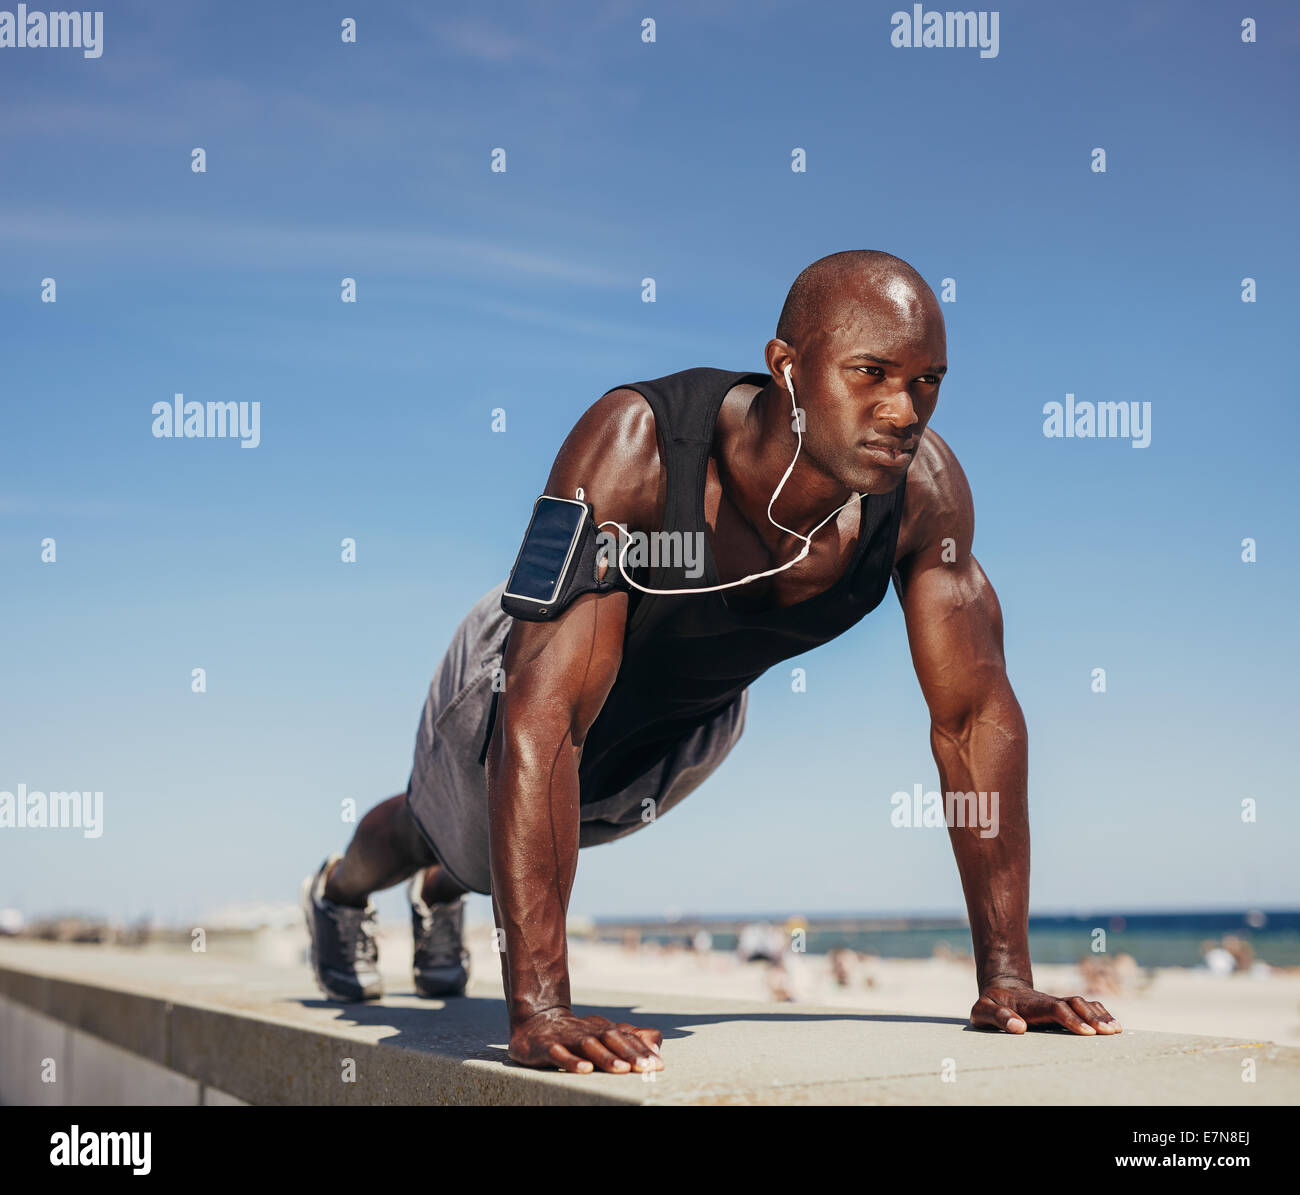 Muscular man doing push ups against blue sky. Strong male athlete working out outdoors. - Stock Image